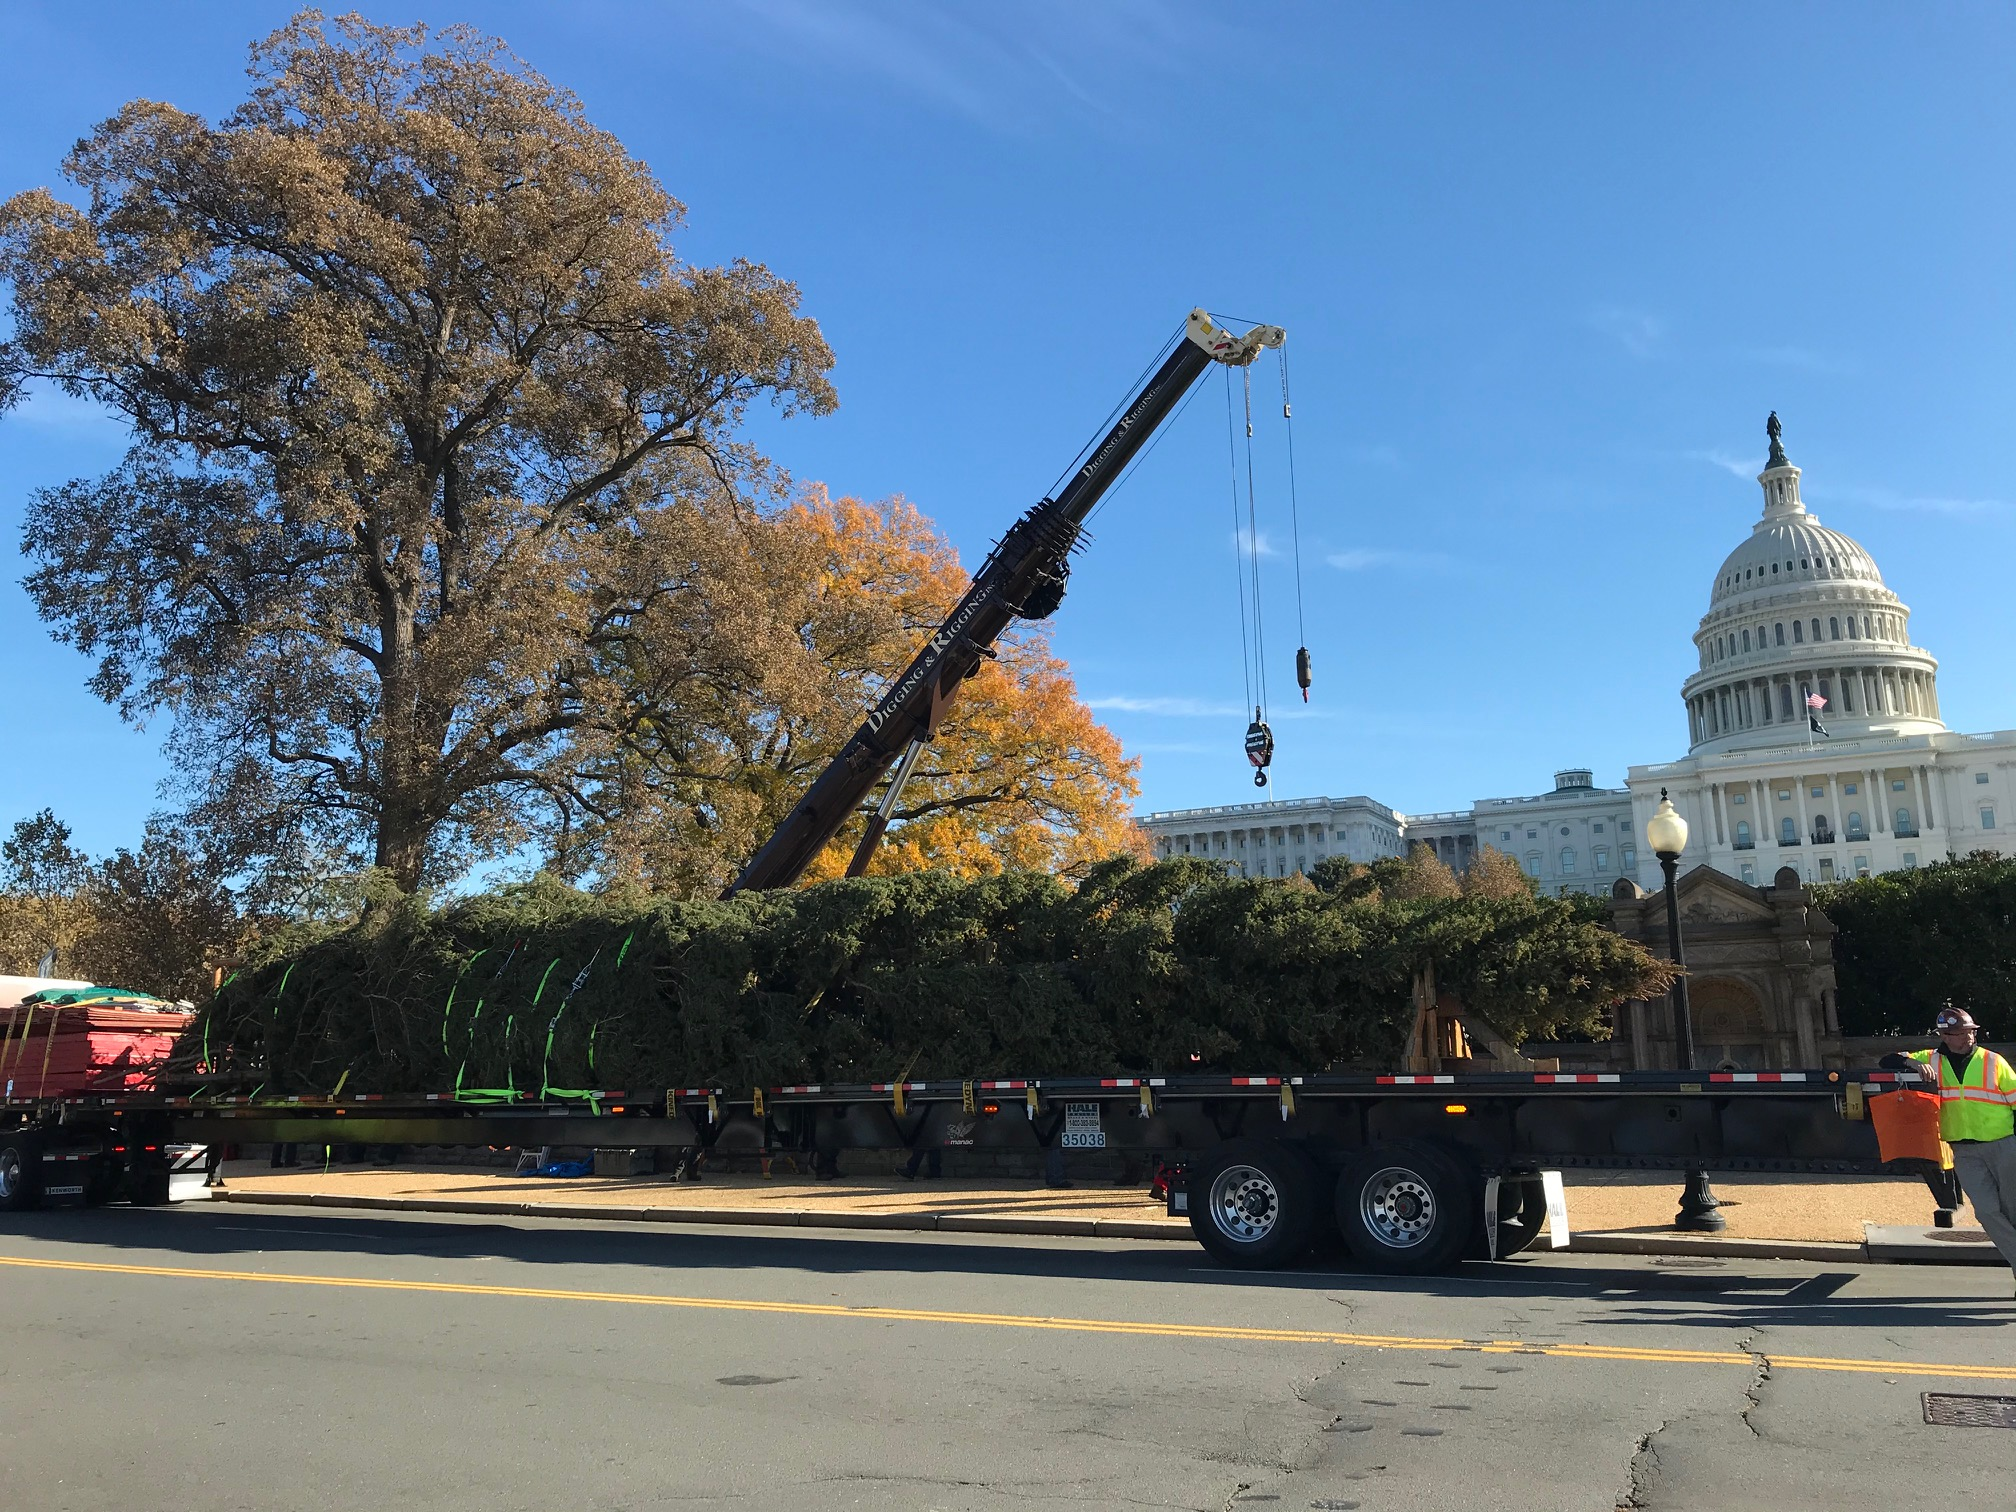 The U.S. Capitol Tree arrives at the western lawn of the U.S. Capitol Building on Nov. 25, 2019. The 60 ft. Blue Spruce comes from Carson National Forest.